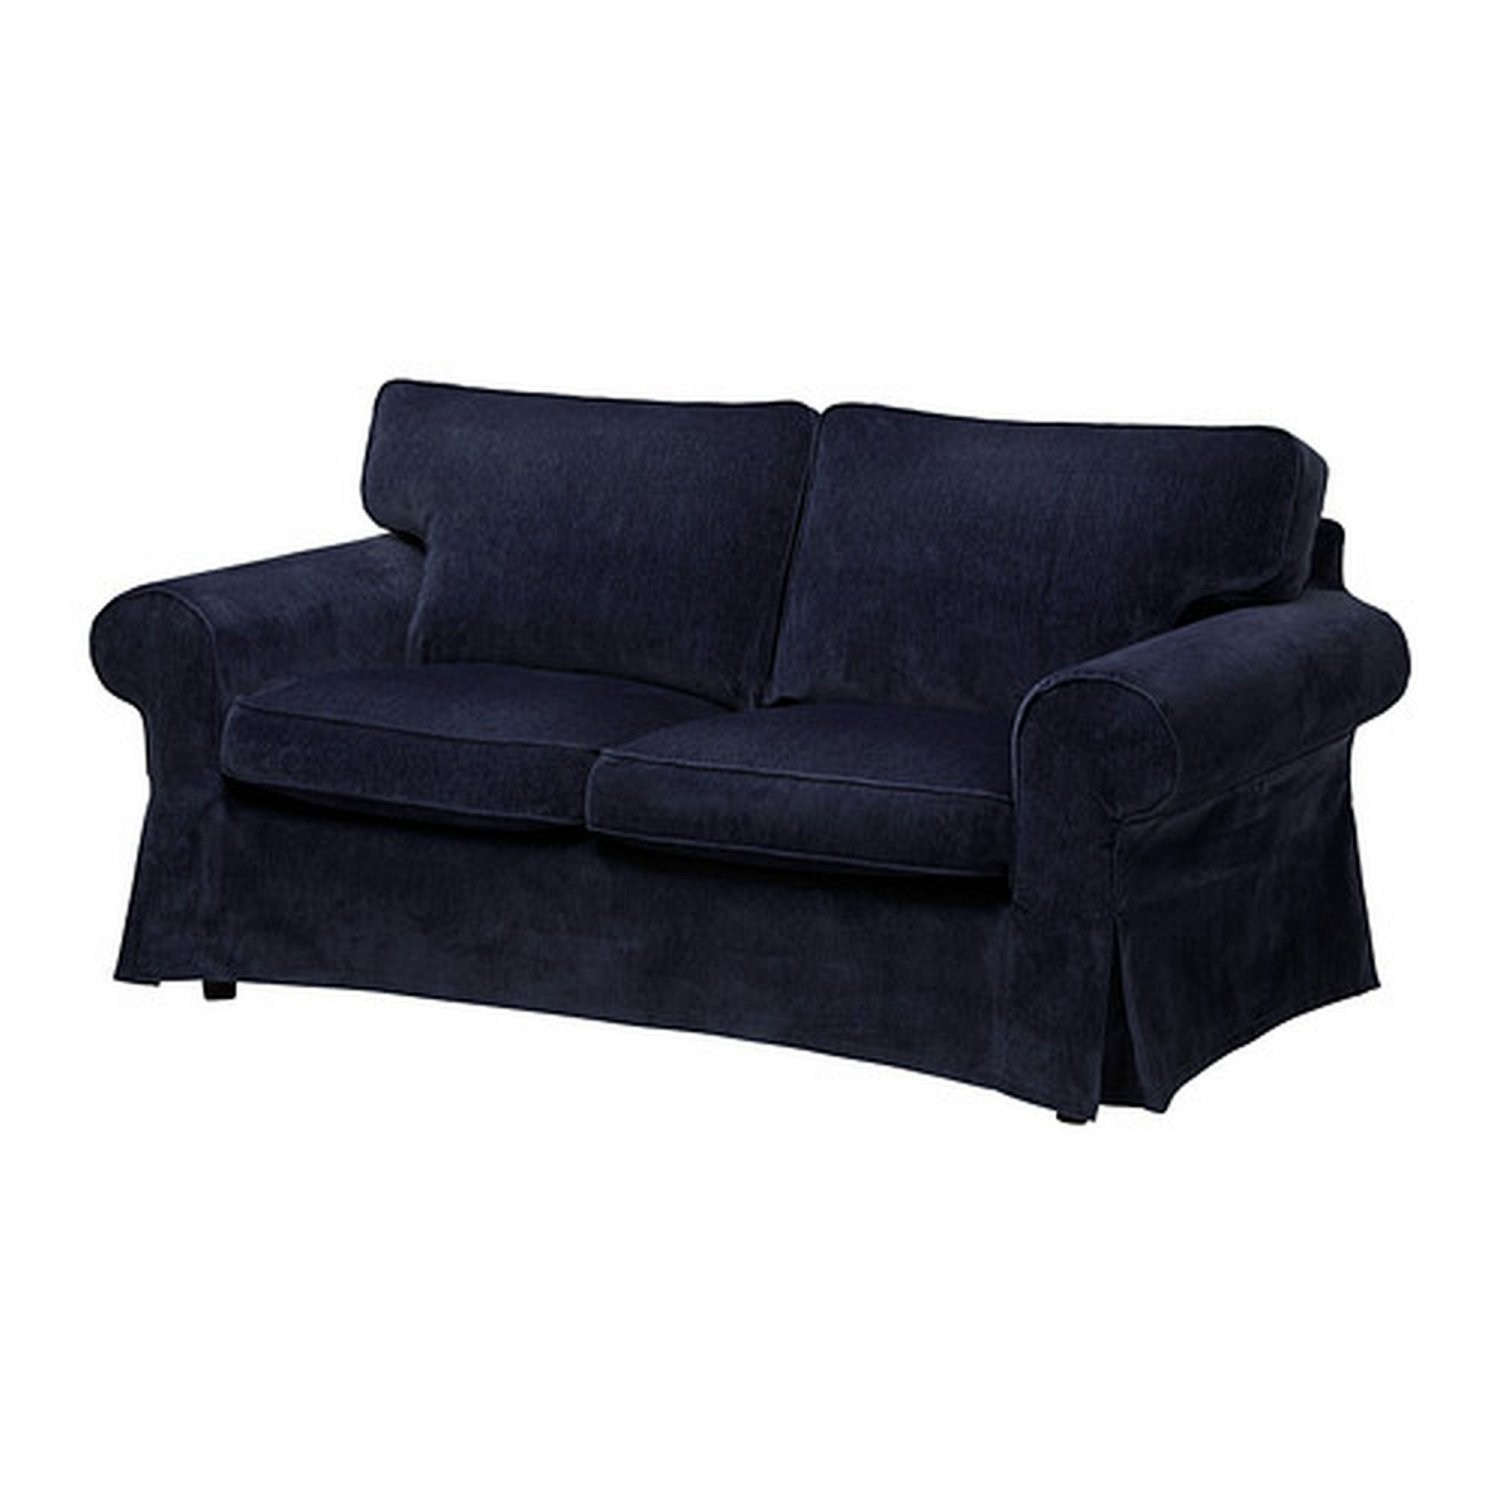 Ikea Ektorp 2 Seat Sofa Slipcover Loveseat Cover Vellinge Dark Blue